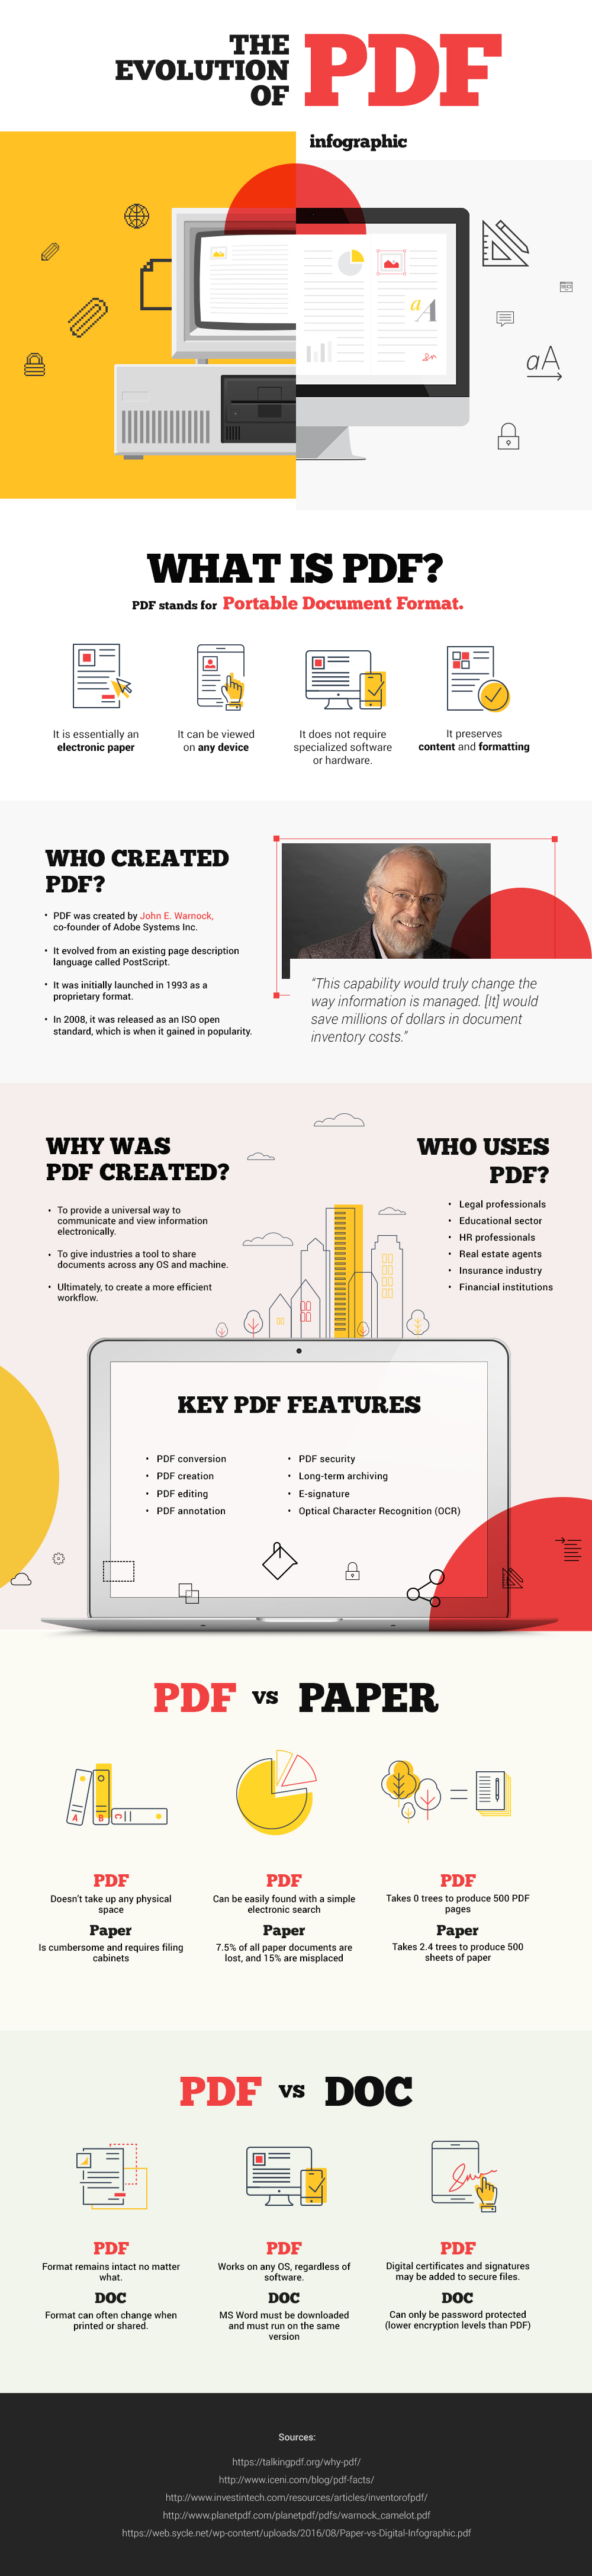 Infographic The Evolution of PDF A Brief History